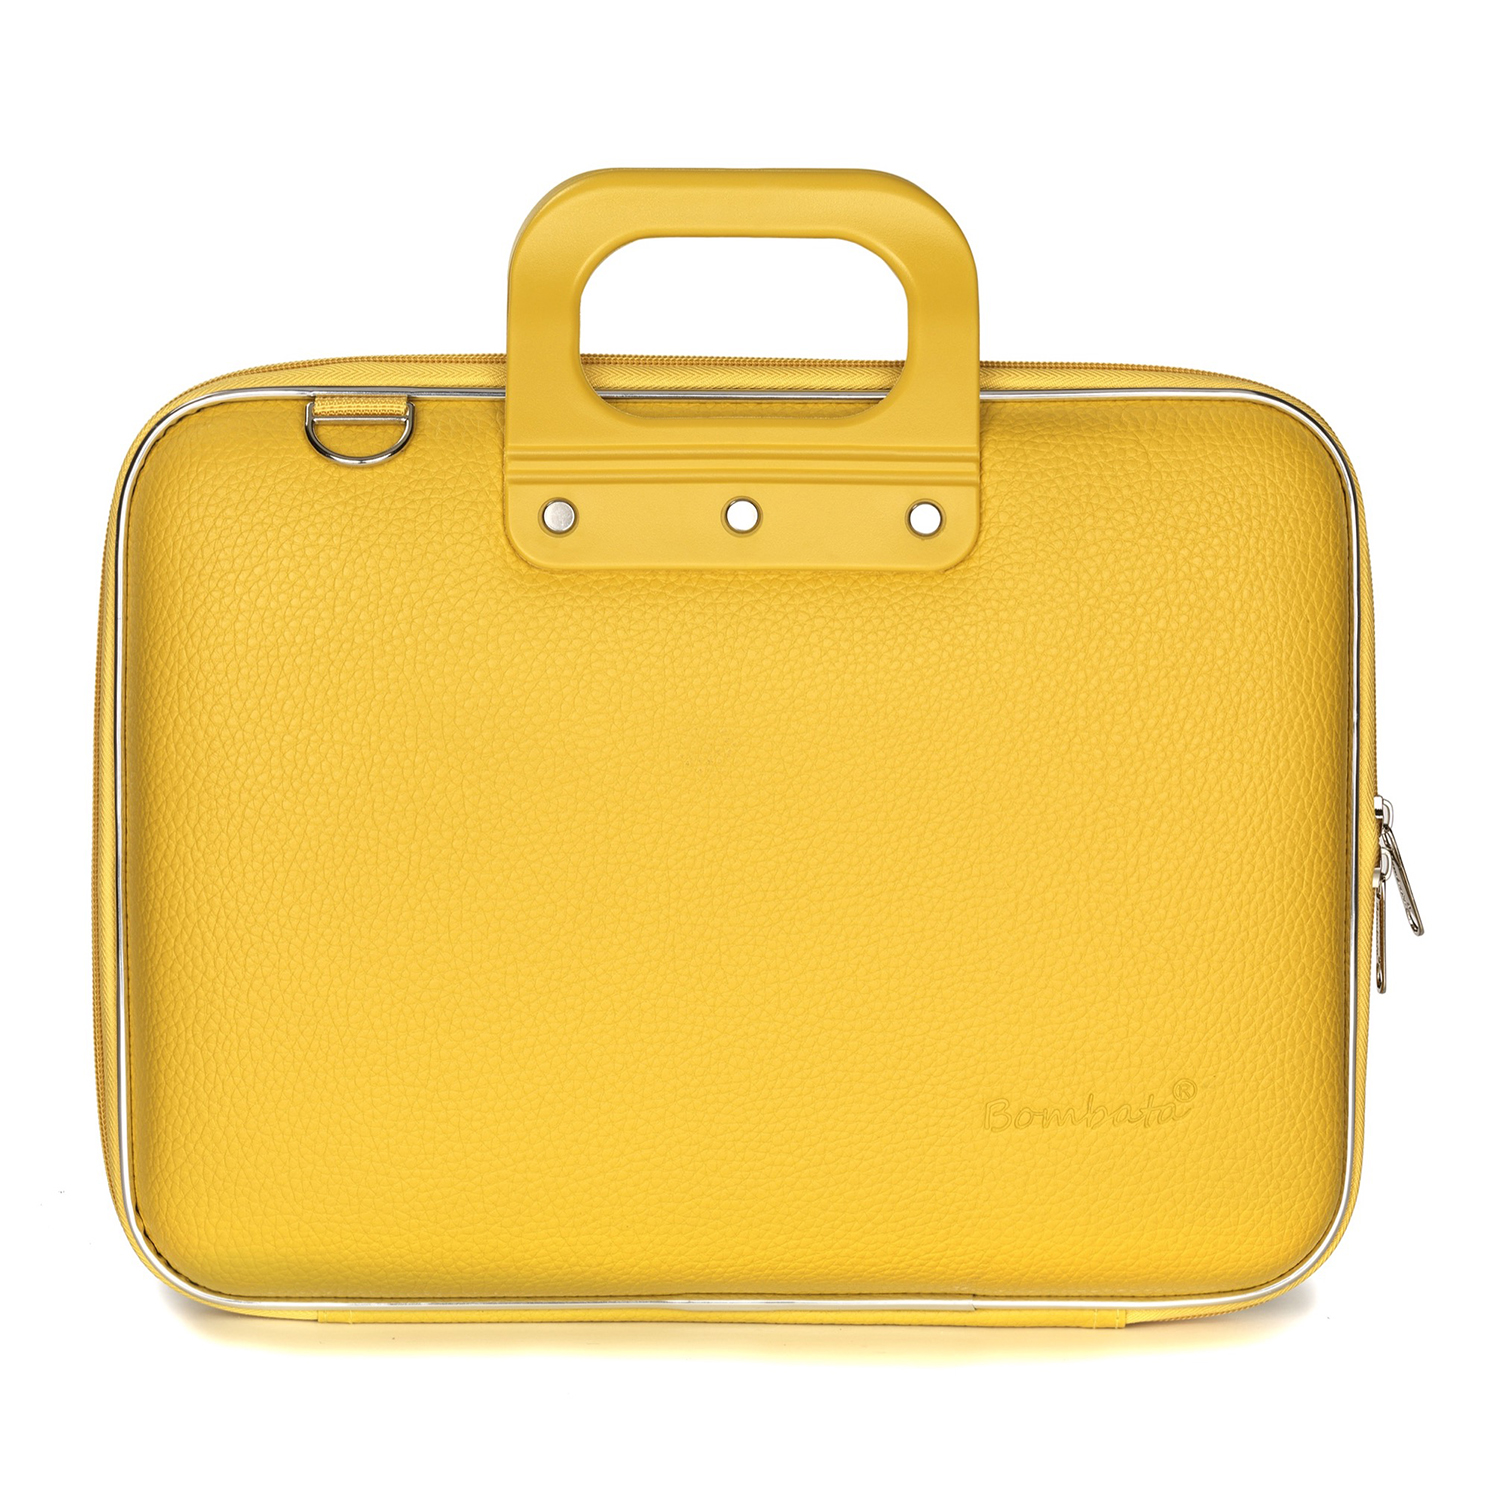 Bombata – Yellow Medio Classic 13″ Laptop Case/Bag with Shoulder Strap